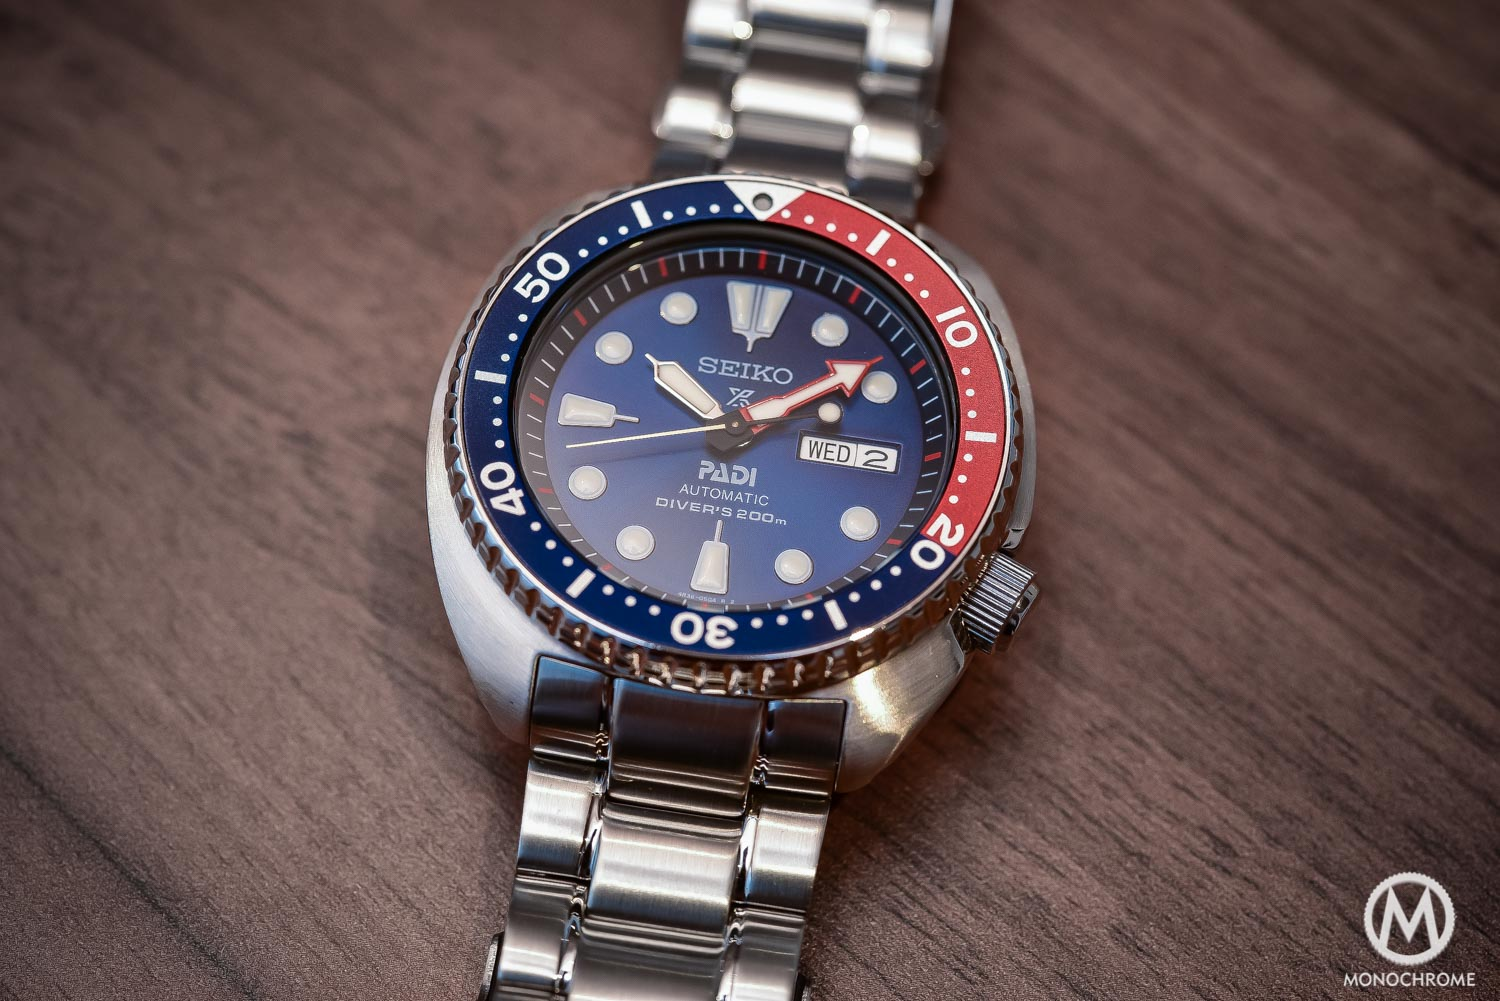 Hands-On Review - Seiko Prospex SRPA21 PADI Turtle - A nice